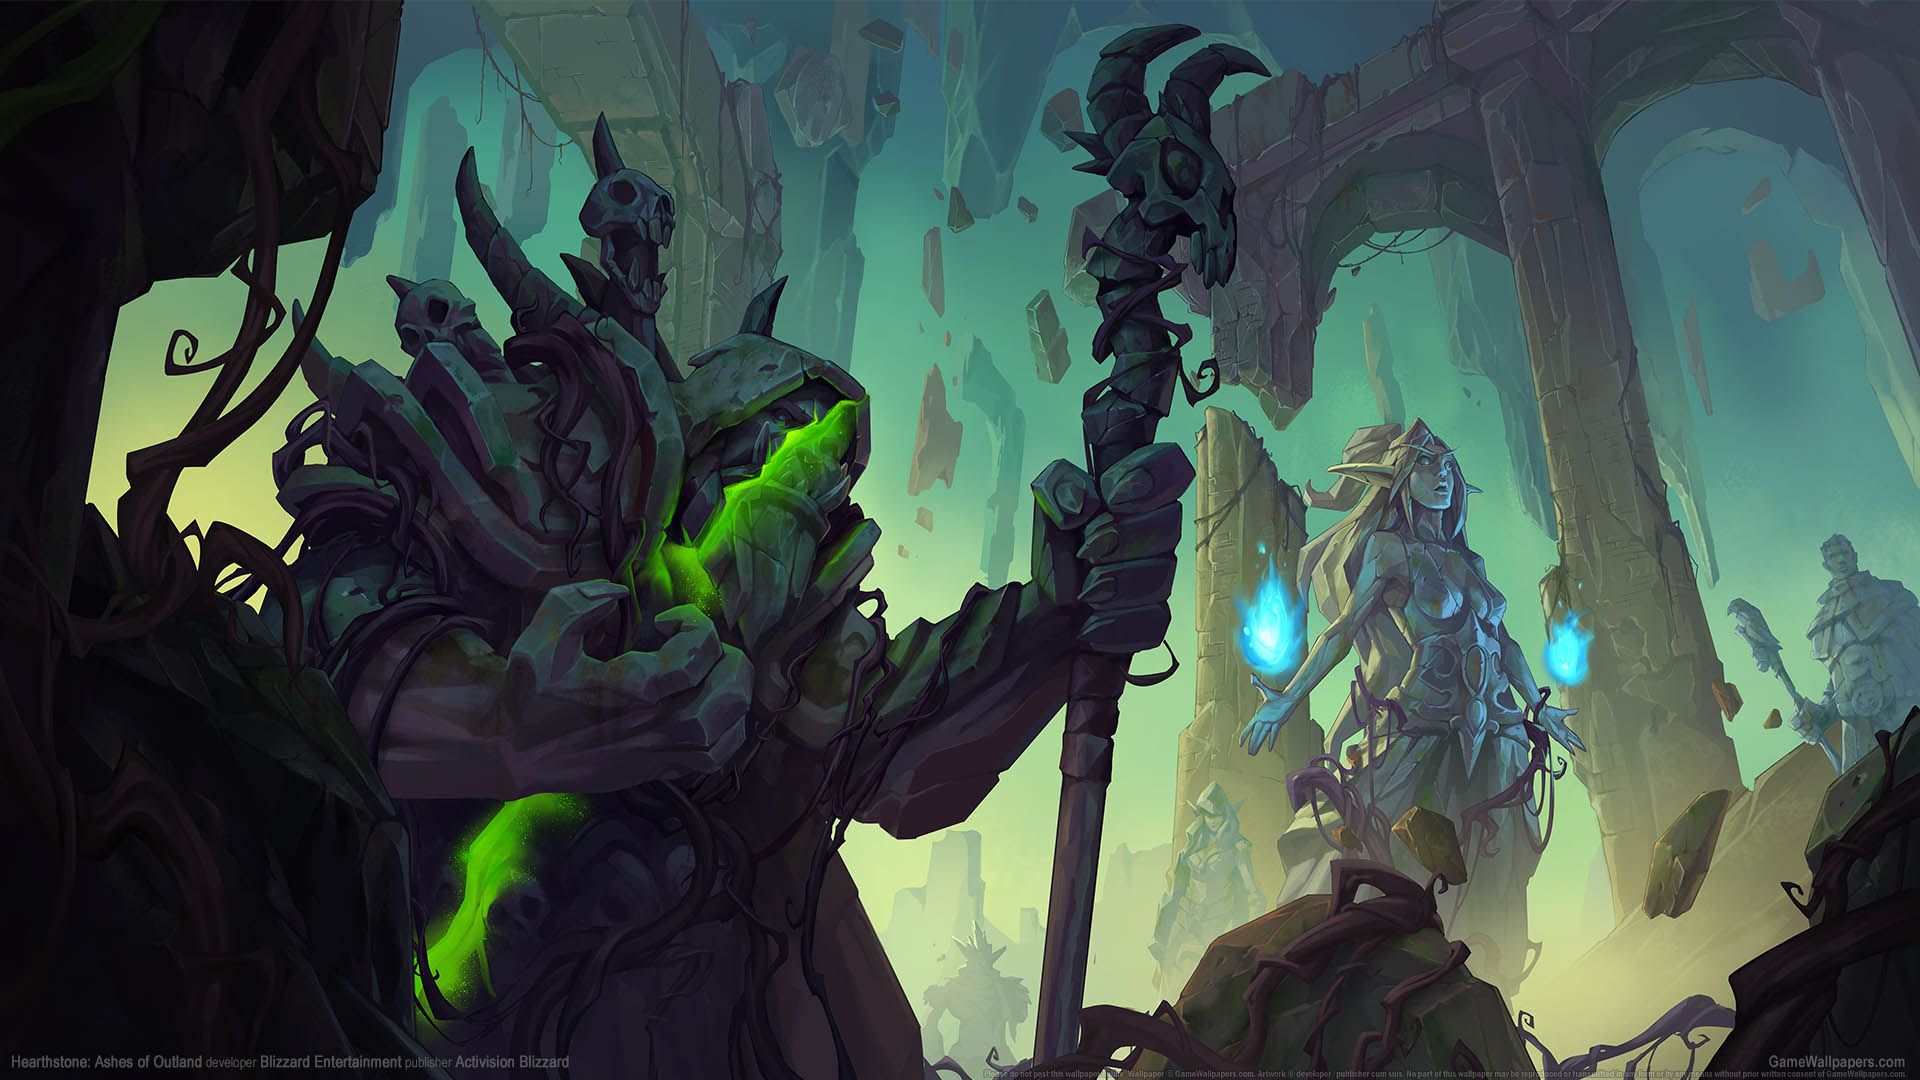 Hearthstone: Ashes of Outland fondo de escritorio 01 1920x1080